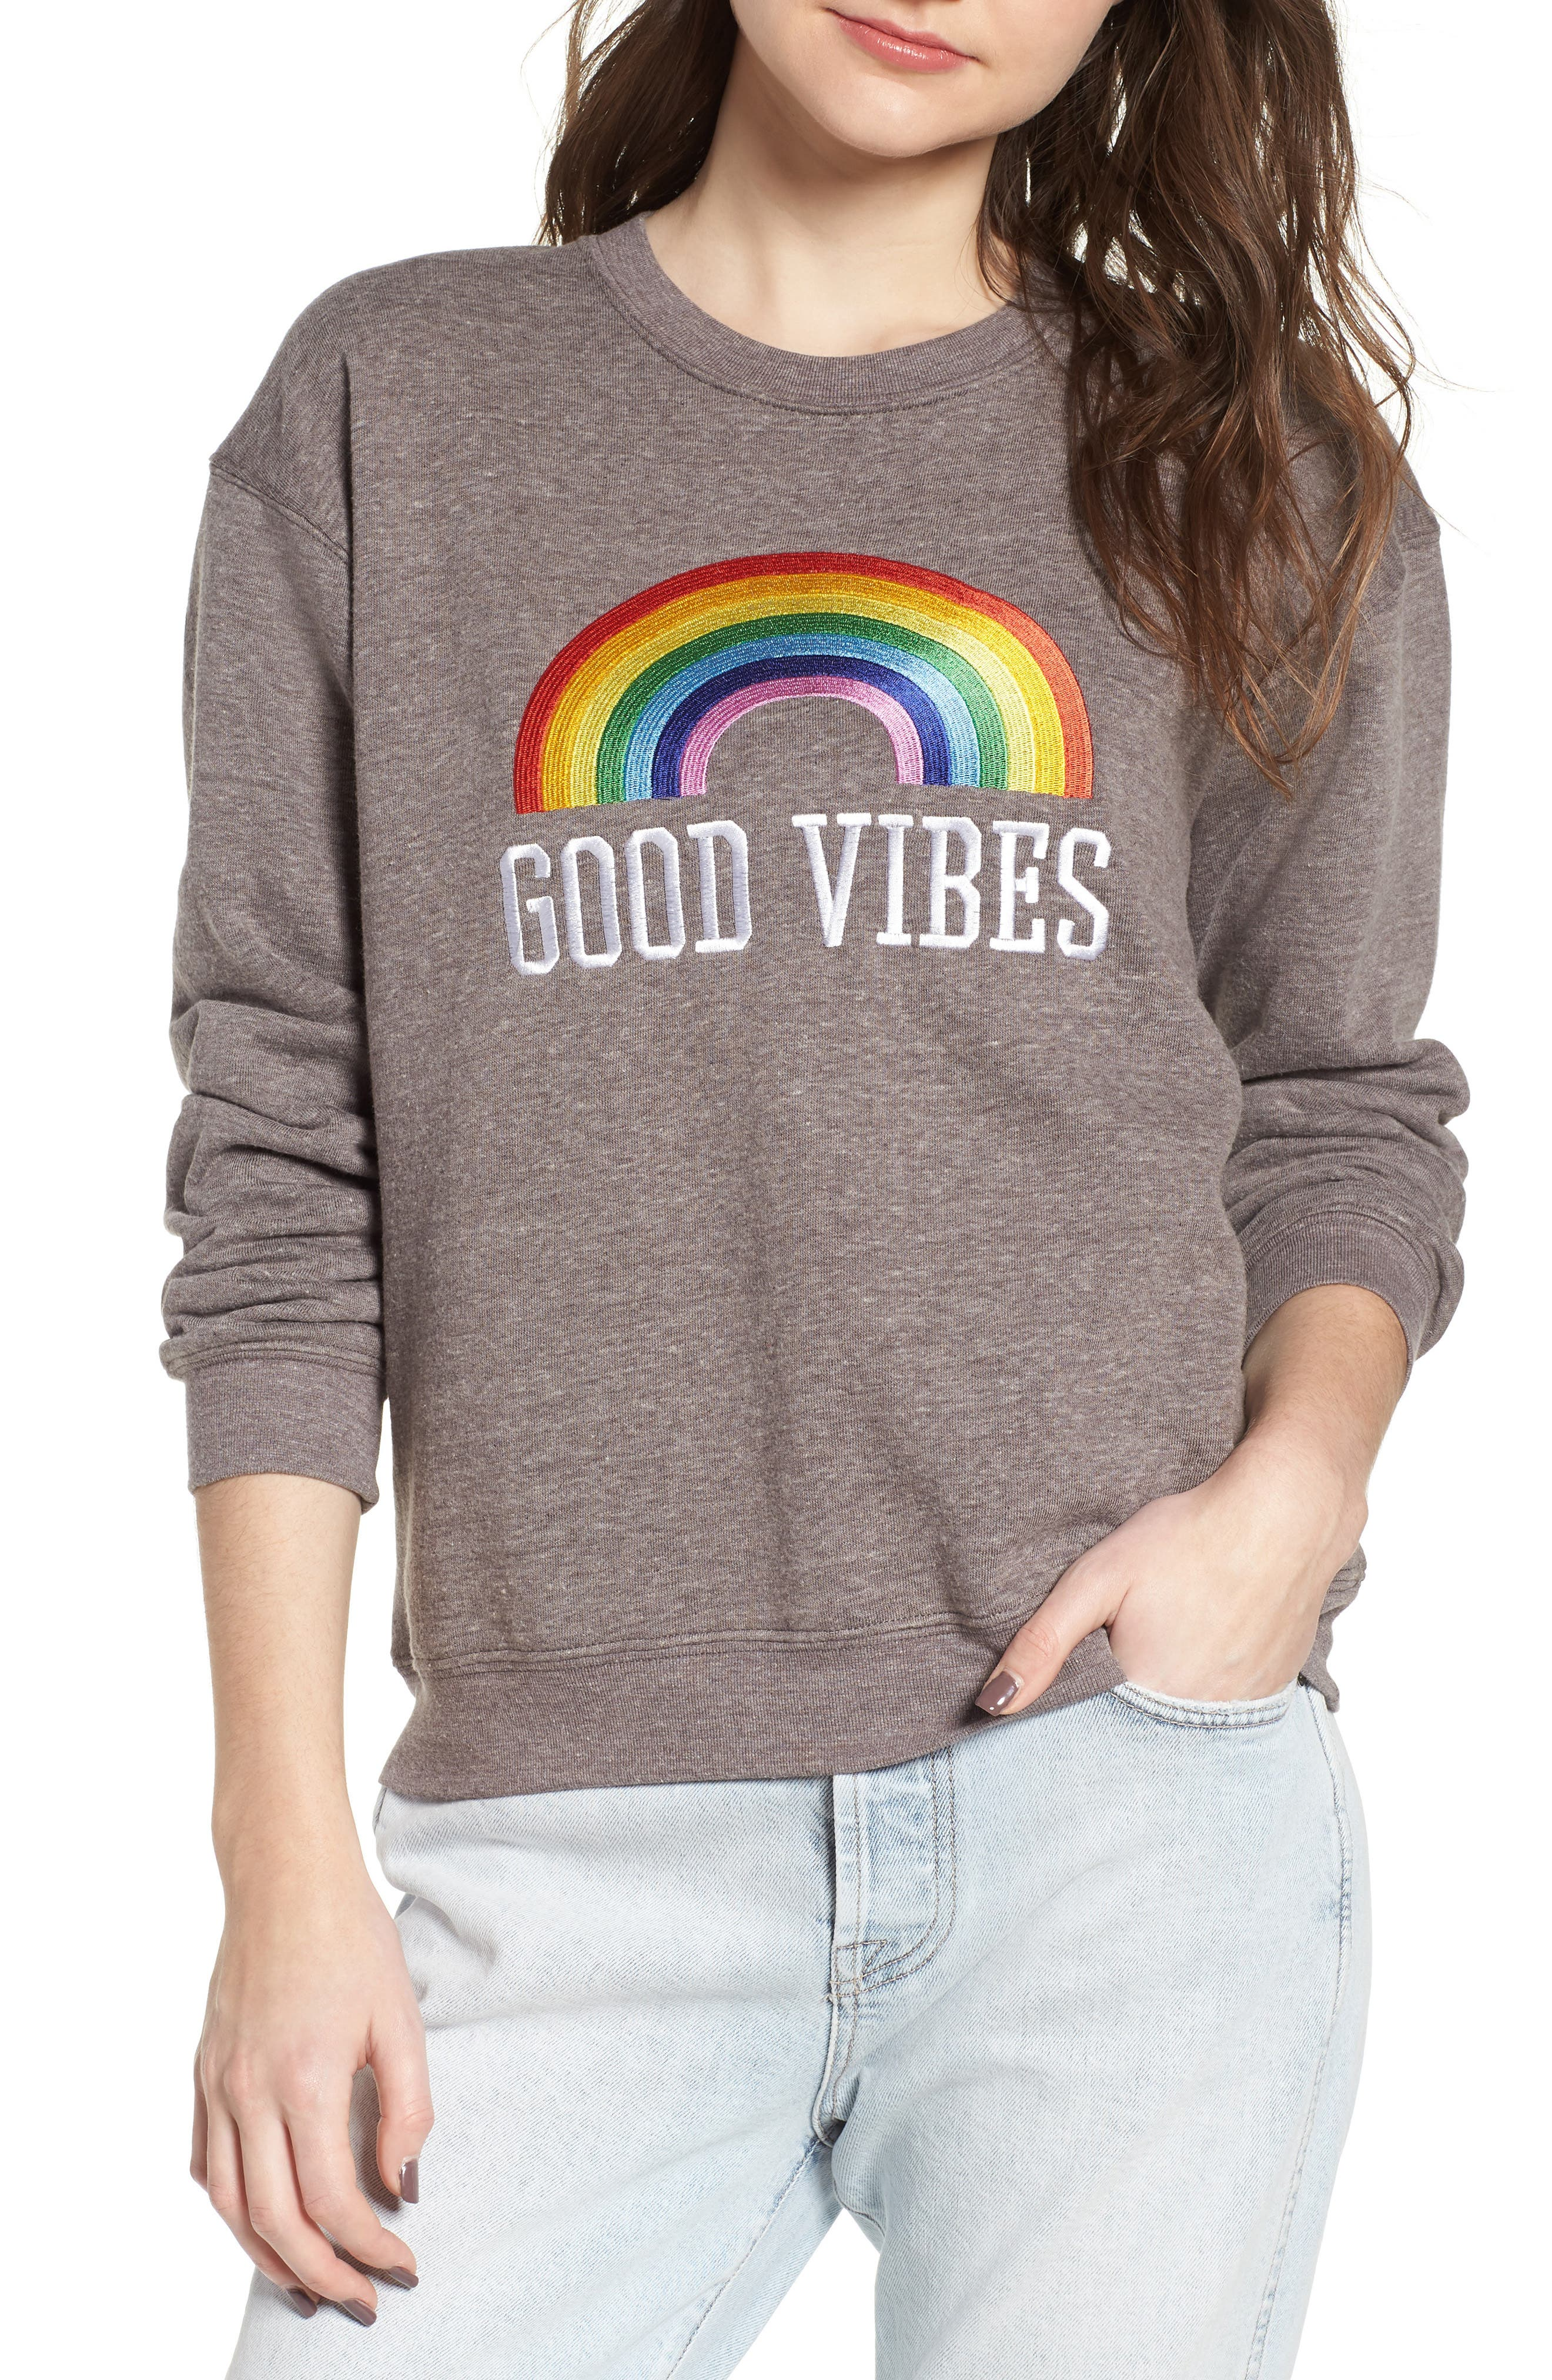 Good Vibes Rainbow Sweatshirt,                             Main thumbnail 1, color,                             HEATHER GREY